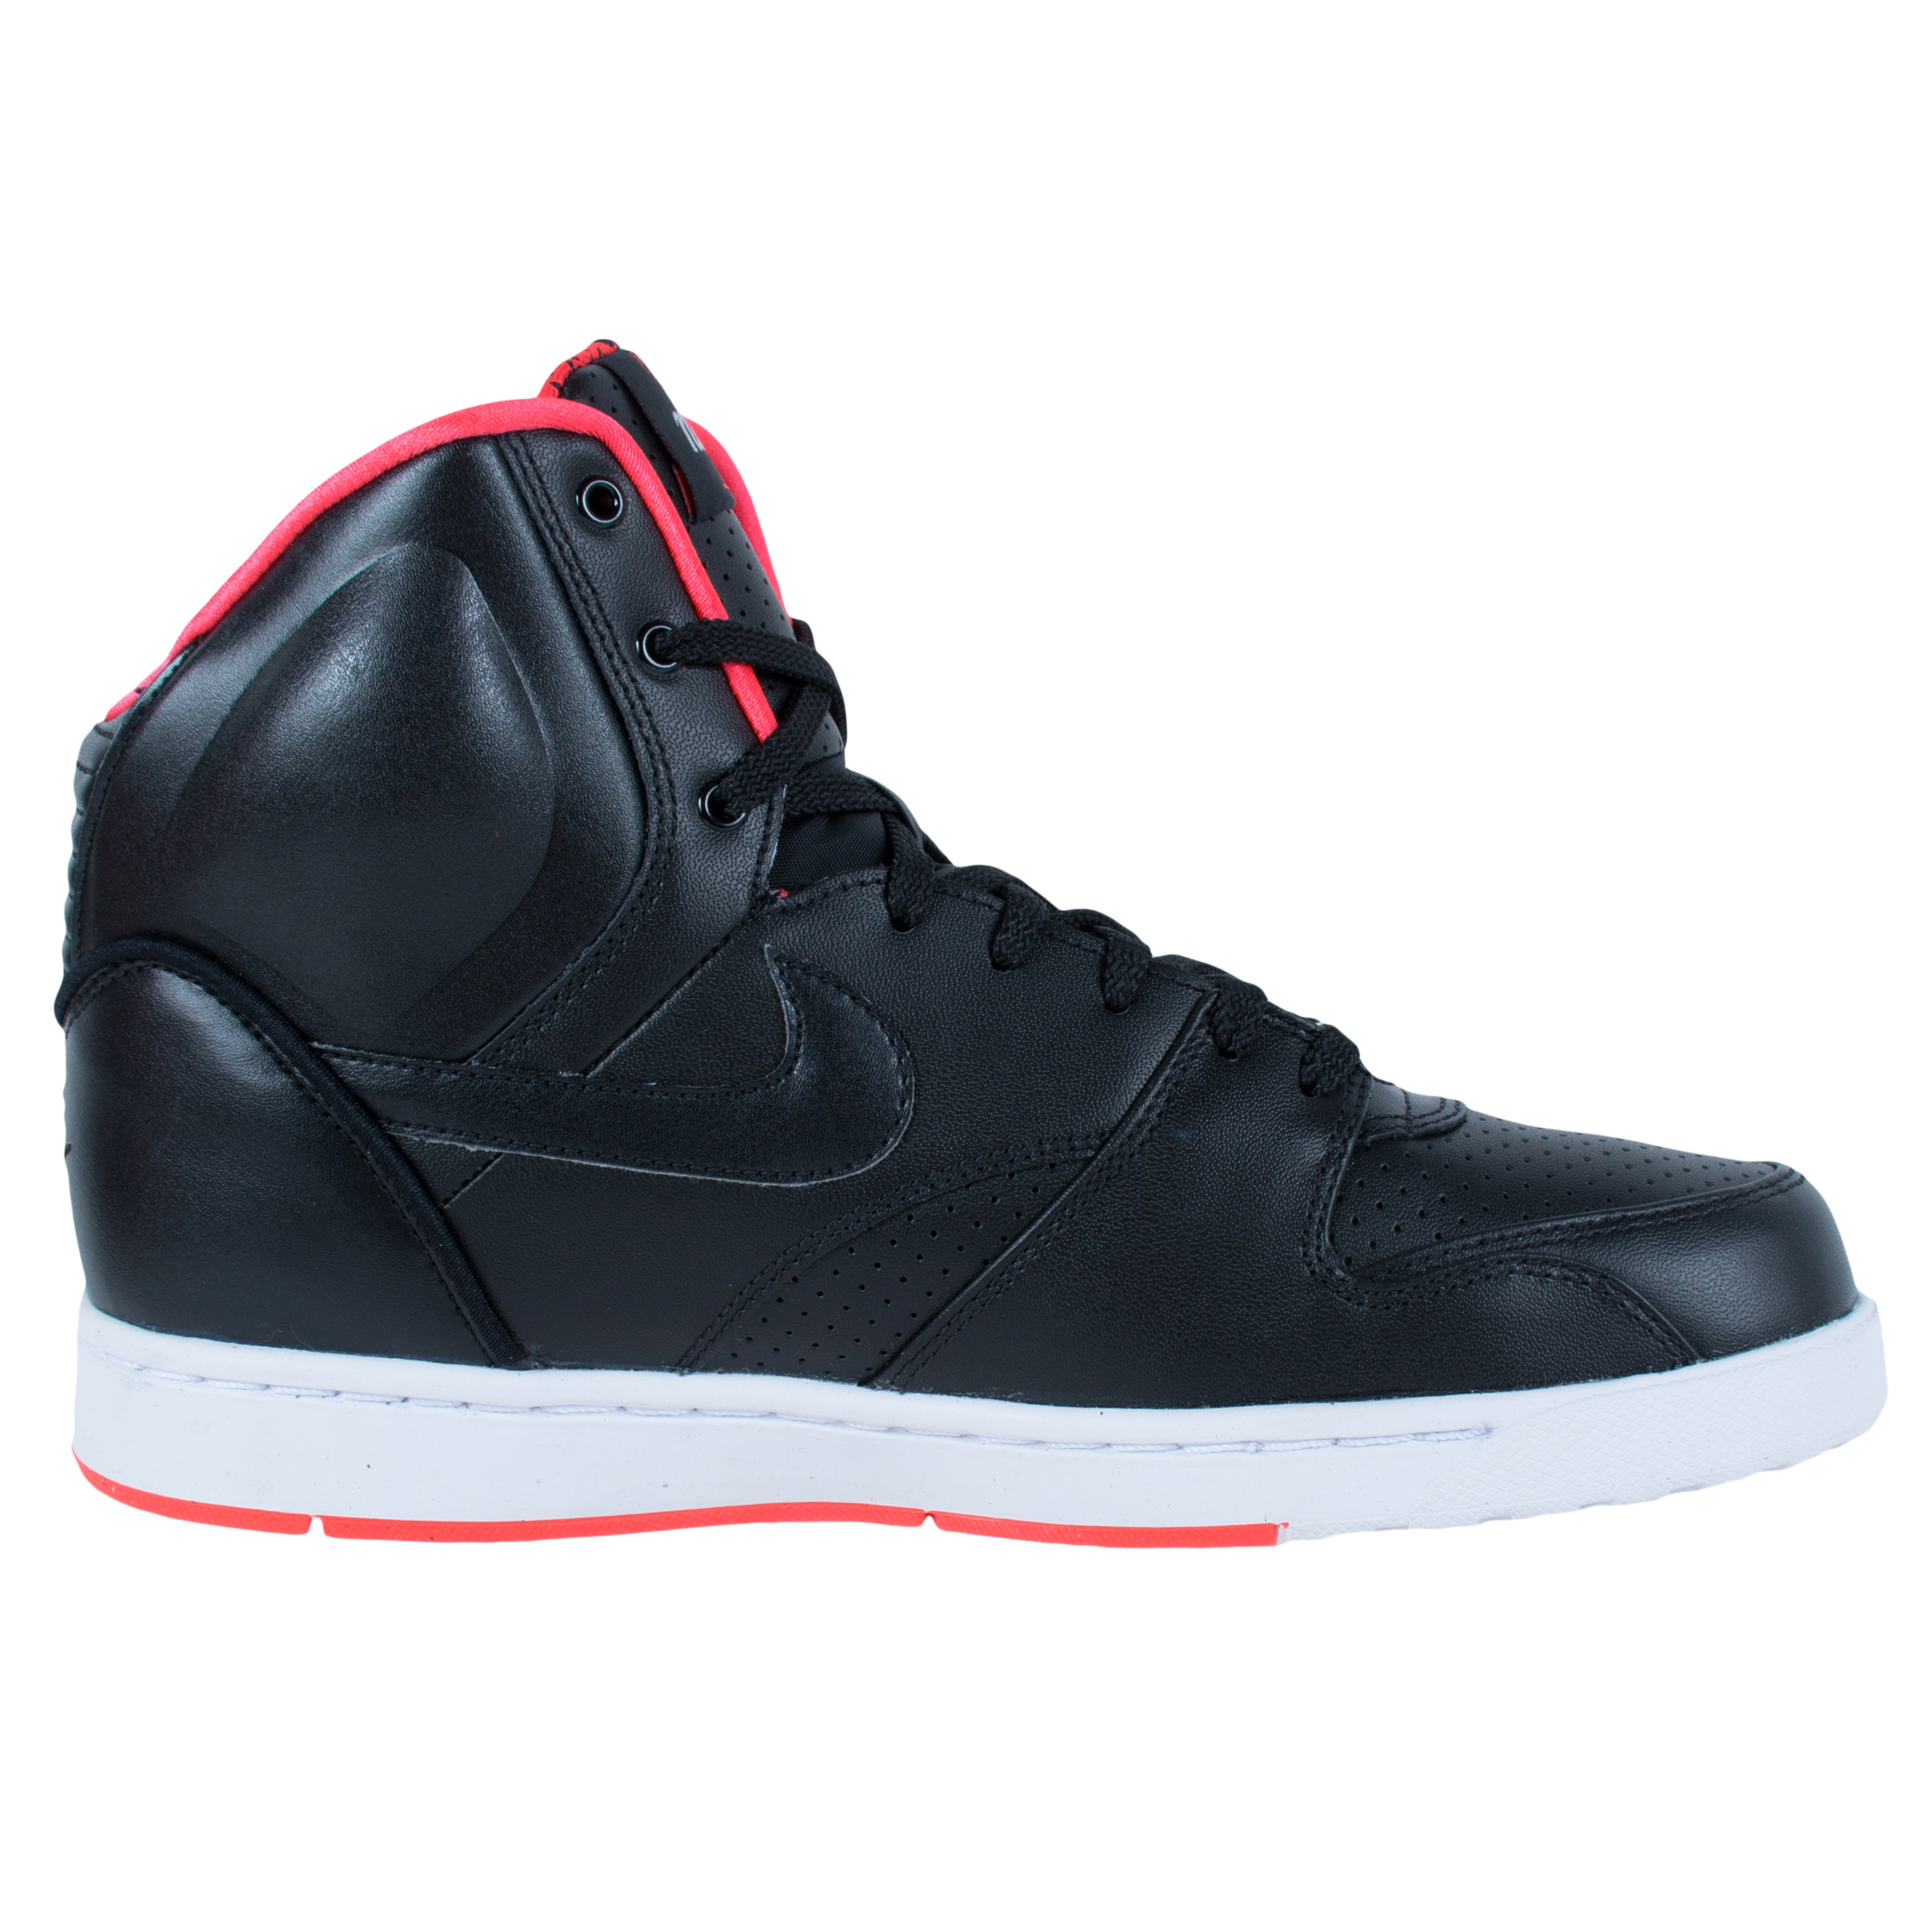 NIKE RT1 HIGH SNEAKERS BLACK BLACK UNIVERSITY RED 354034 006